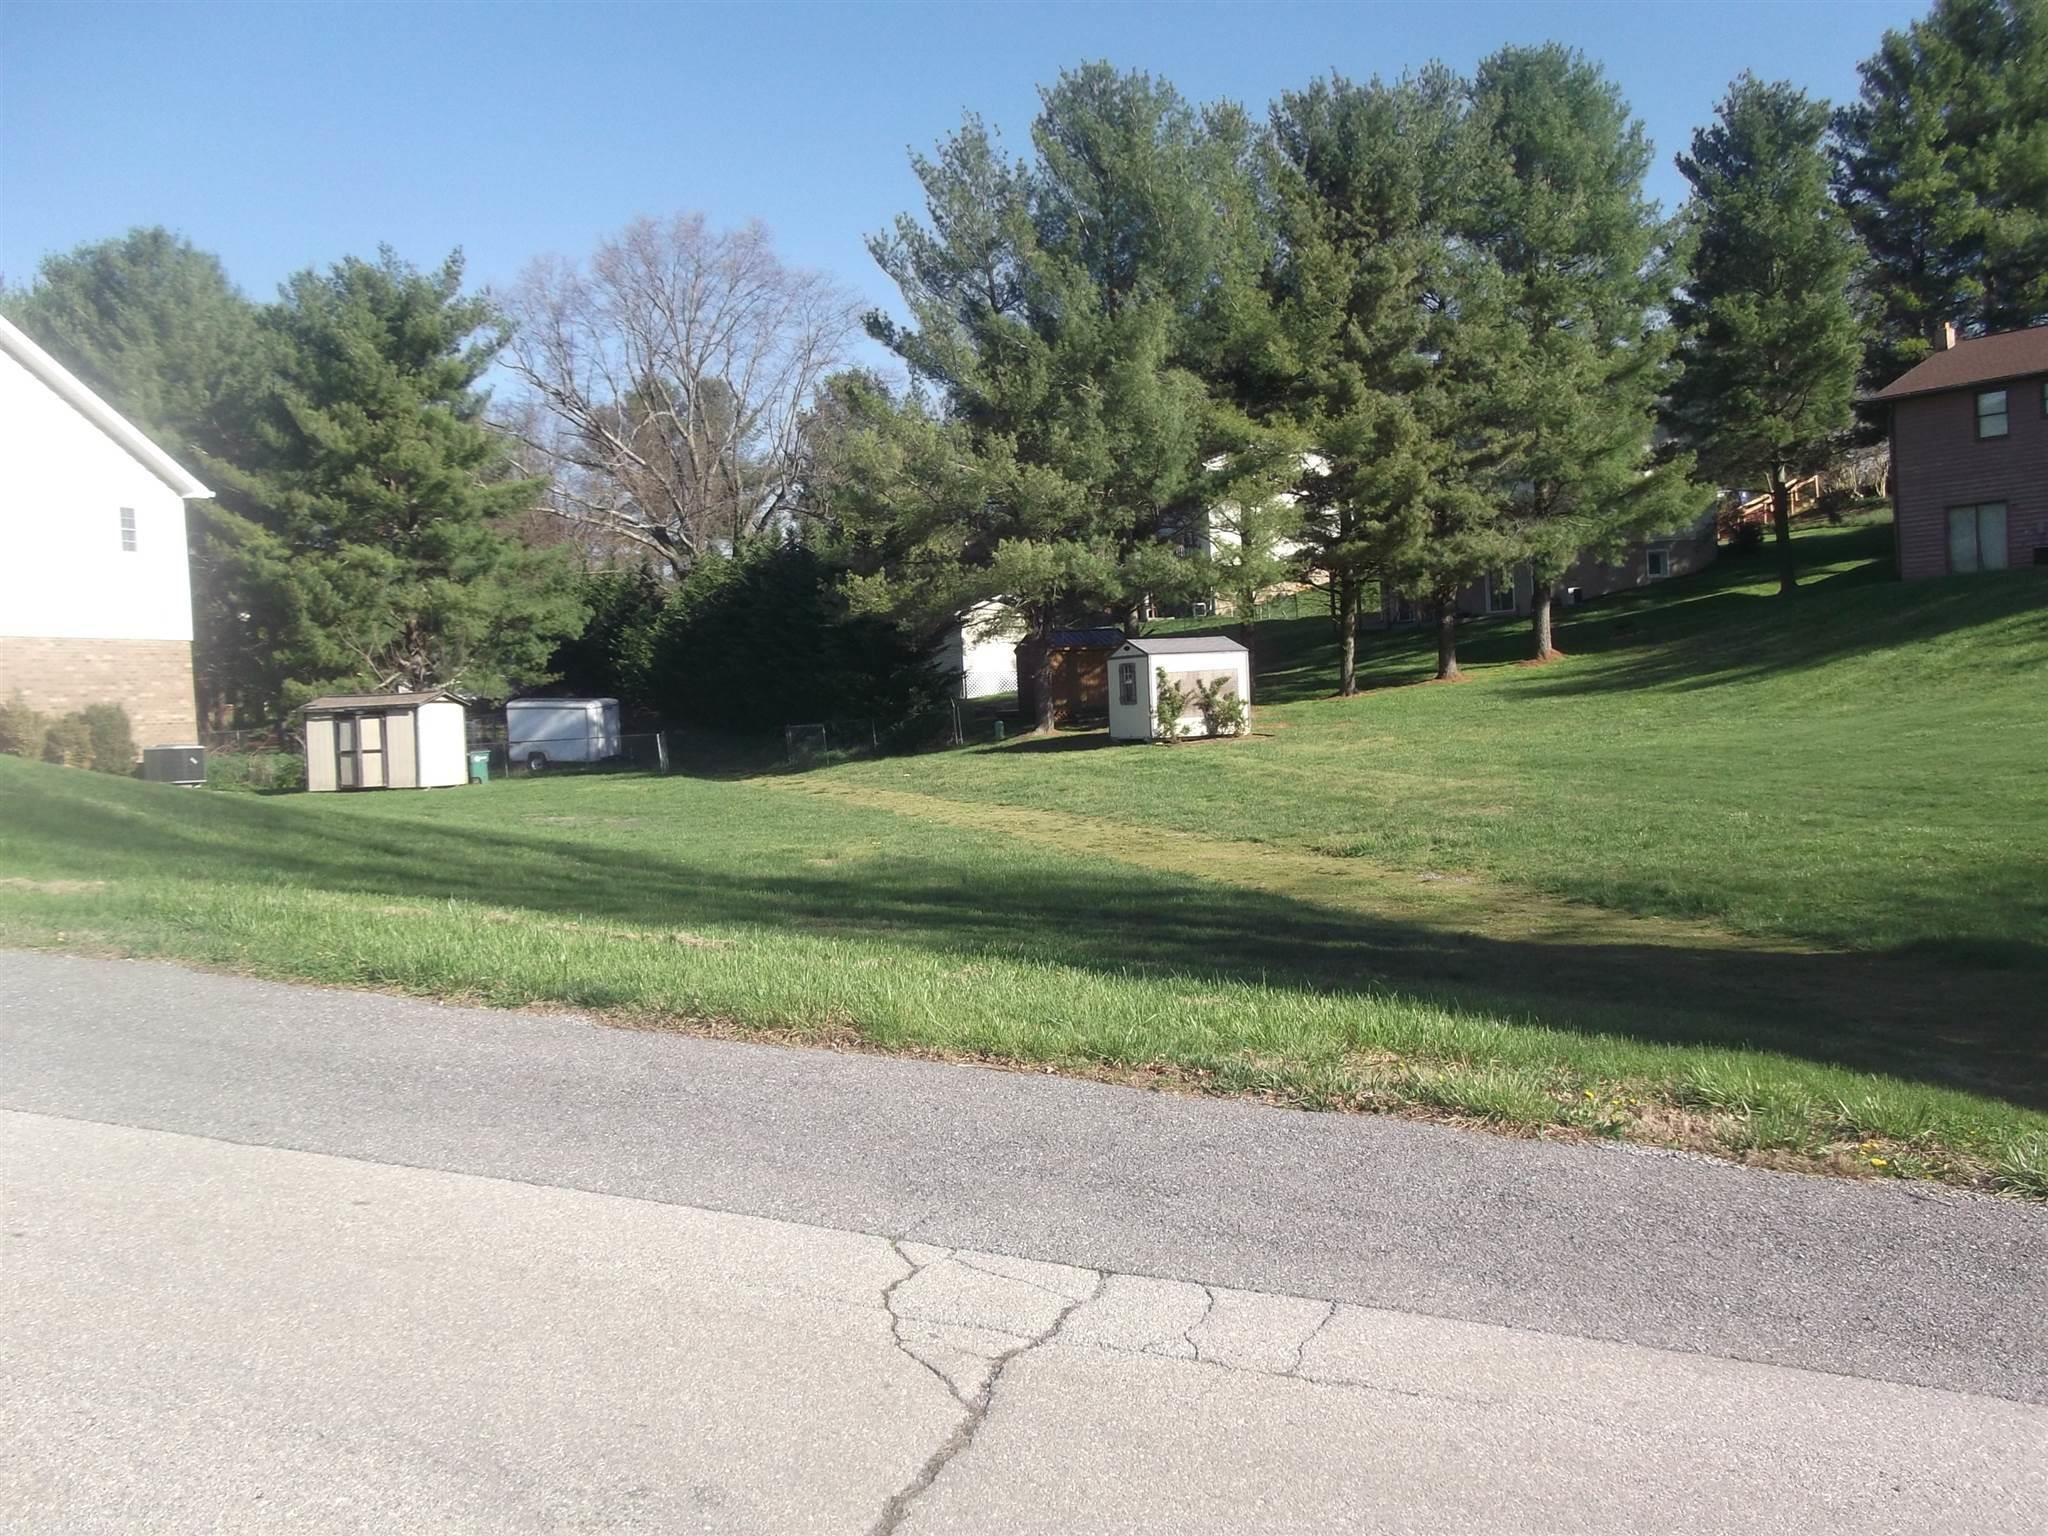 1.4 acre lot zoned R-2 to allow a duplex or a nice large building lot for a secluded home.  Level lot with mature trees. Driveway entrance on Pine Street.   Other possibilities may exist.